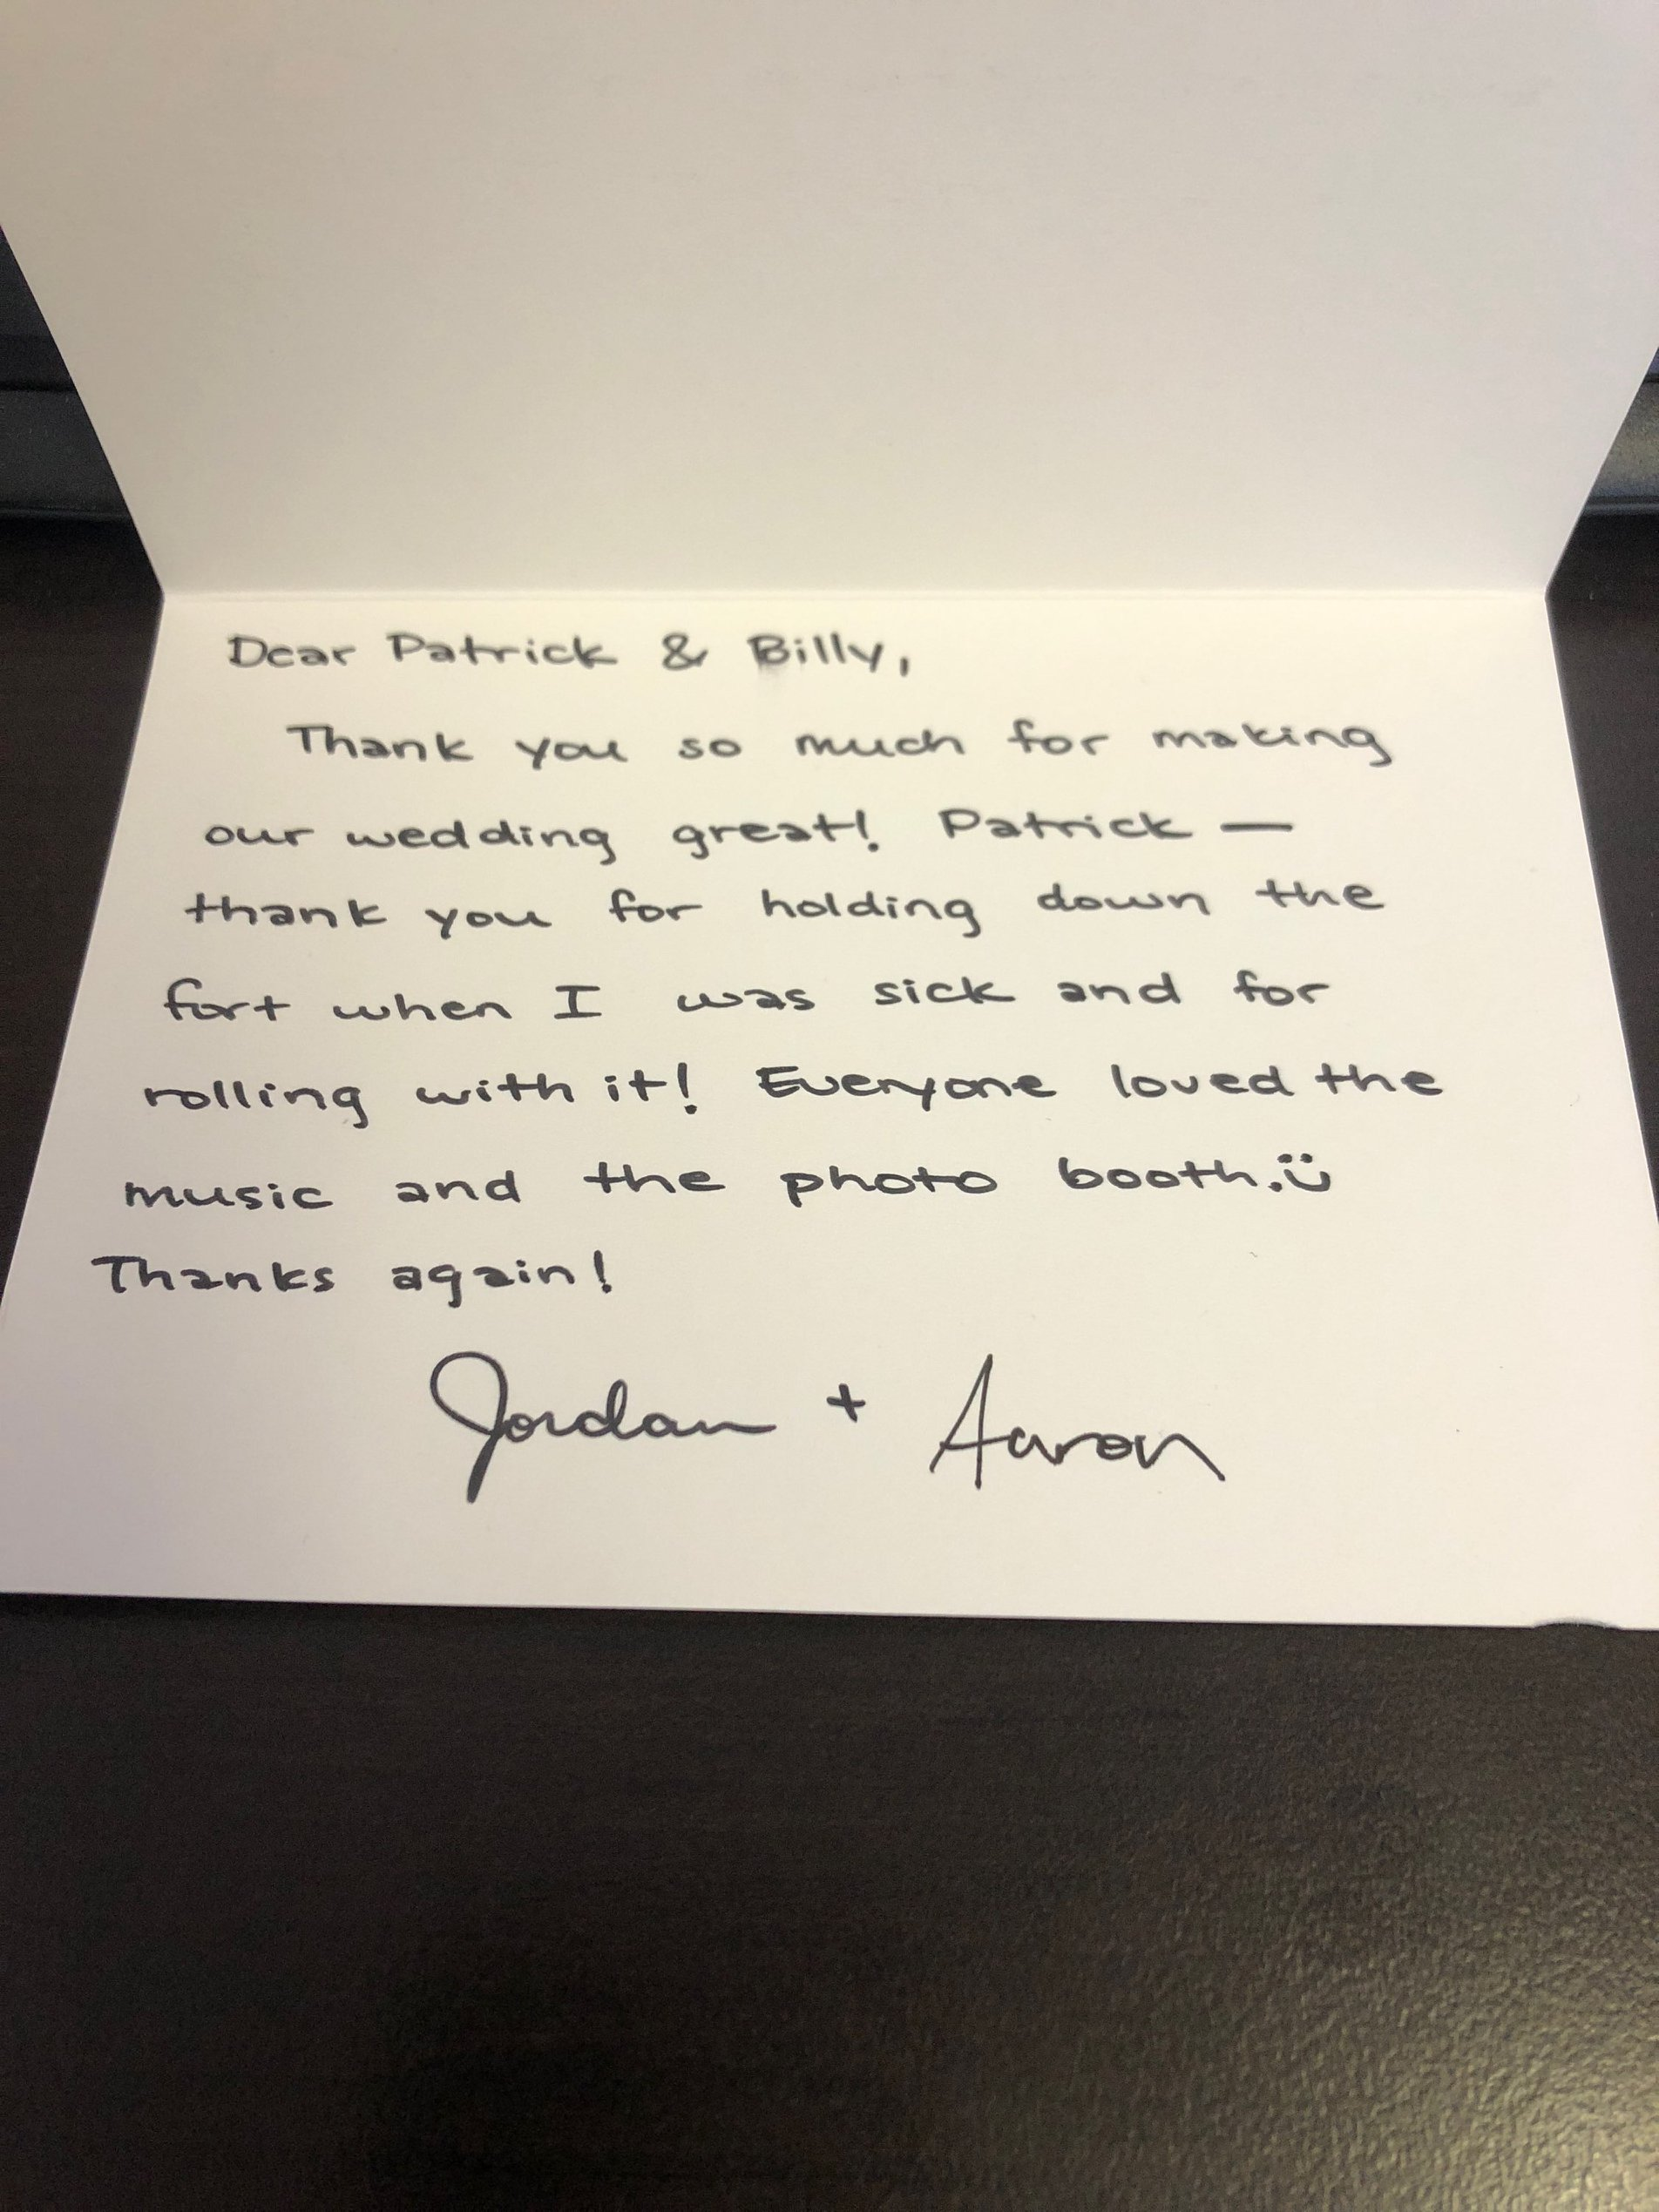 Aaron + Jordan Thank you note